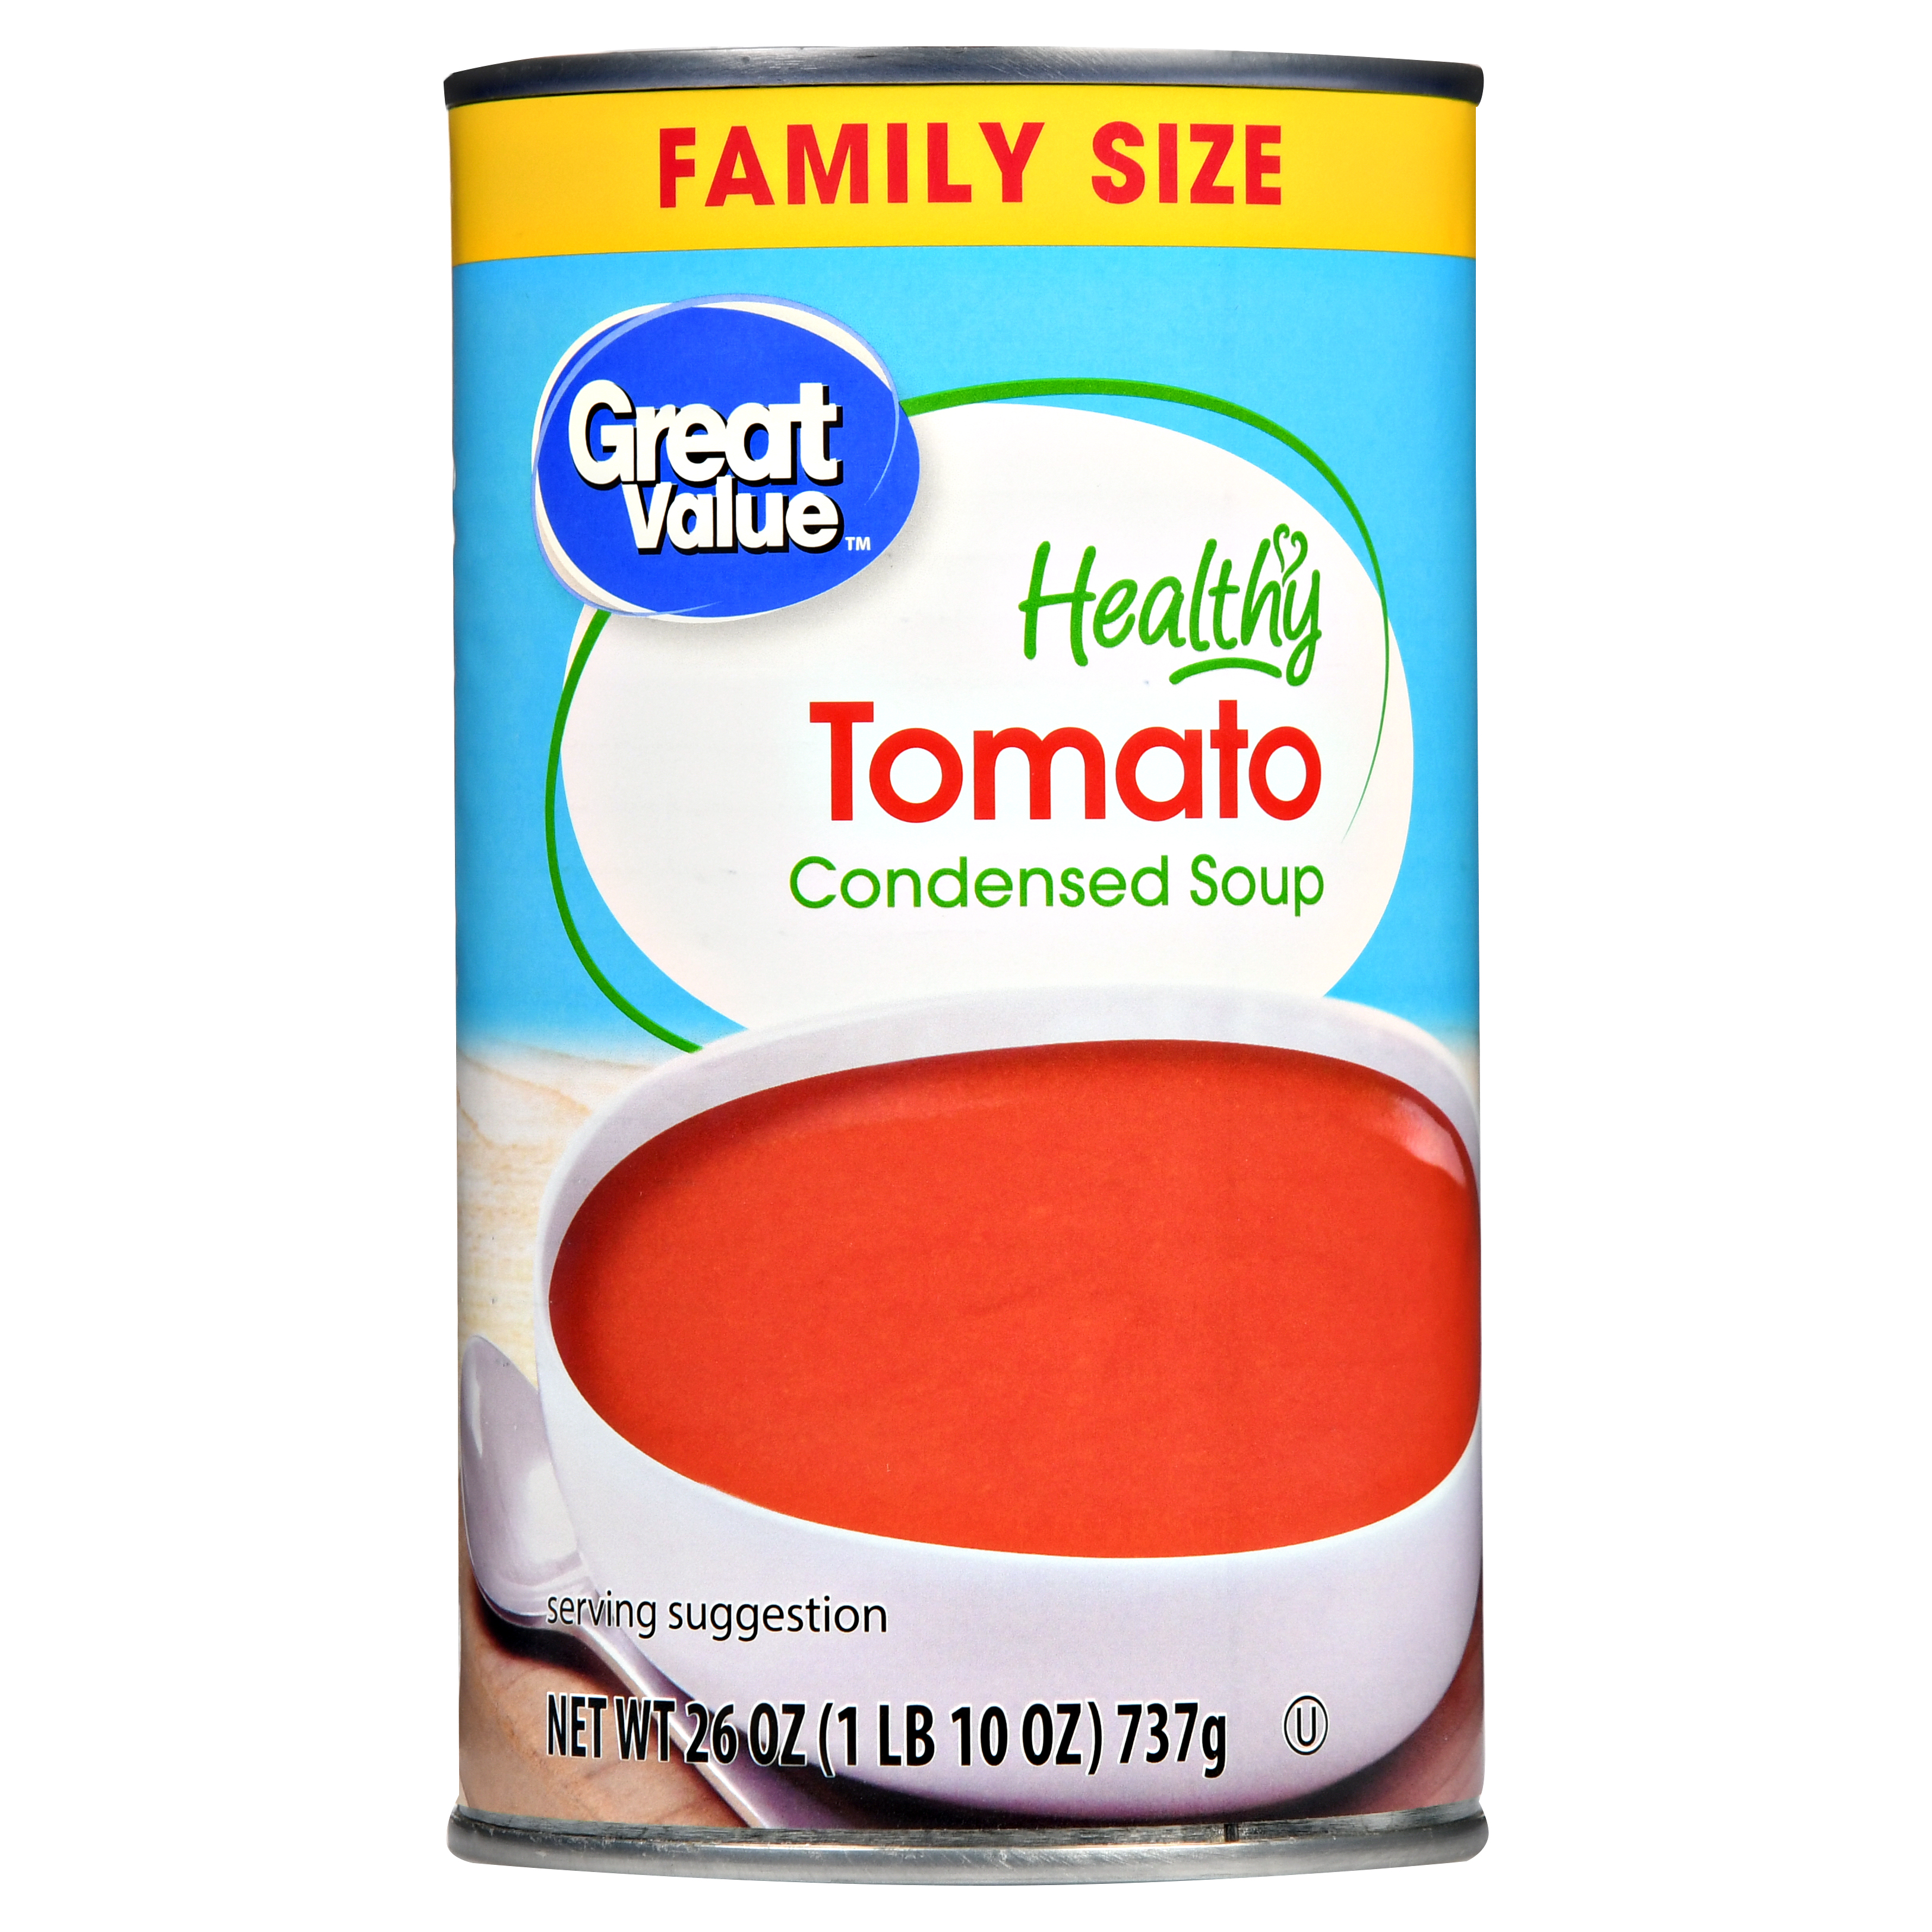 Great Value Healthy Tomato Condensed Soup Family Size, 26 oz